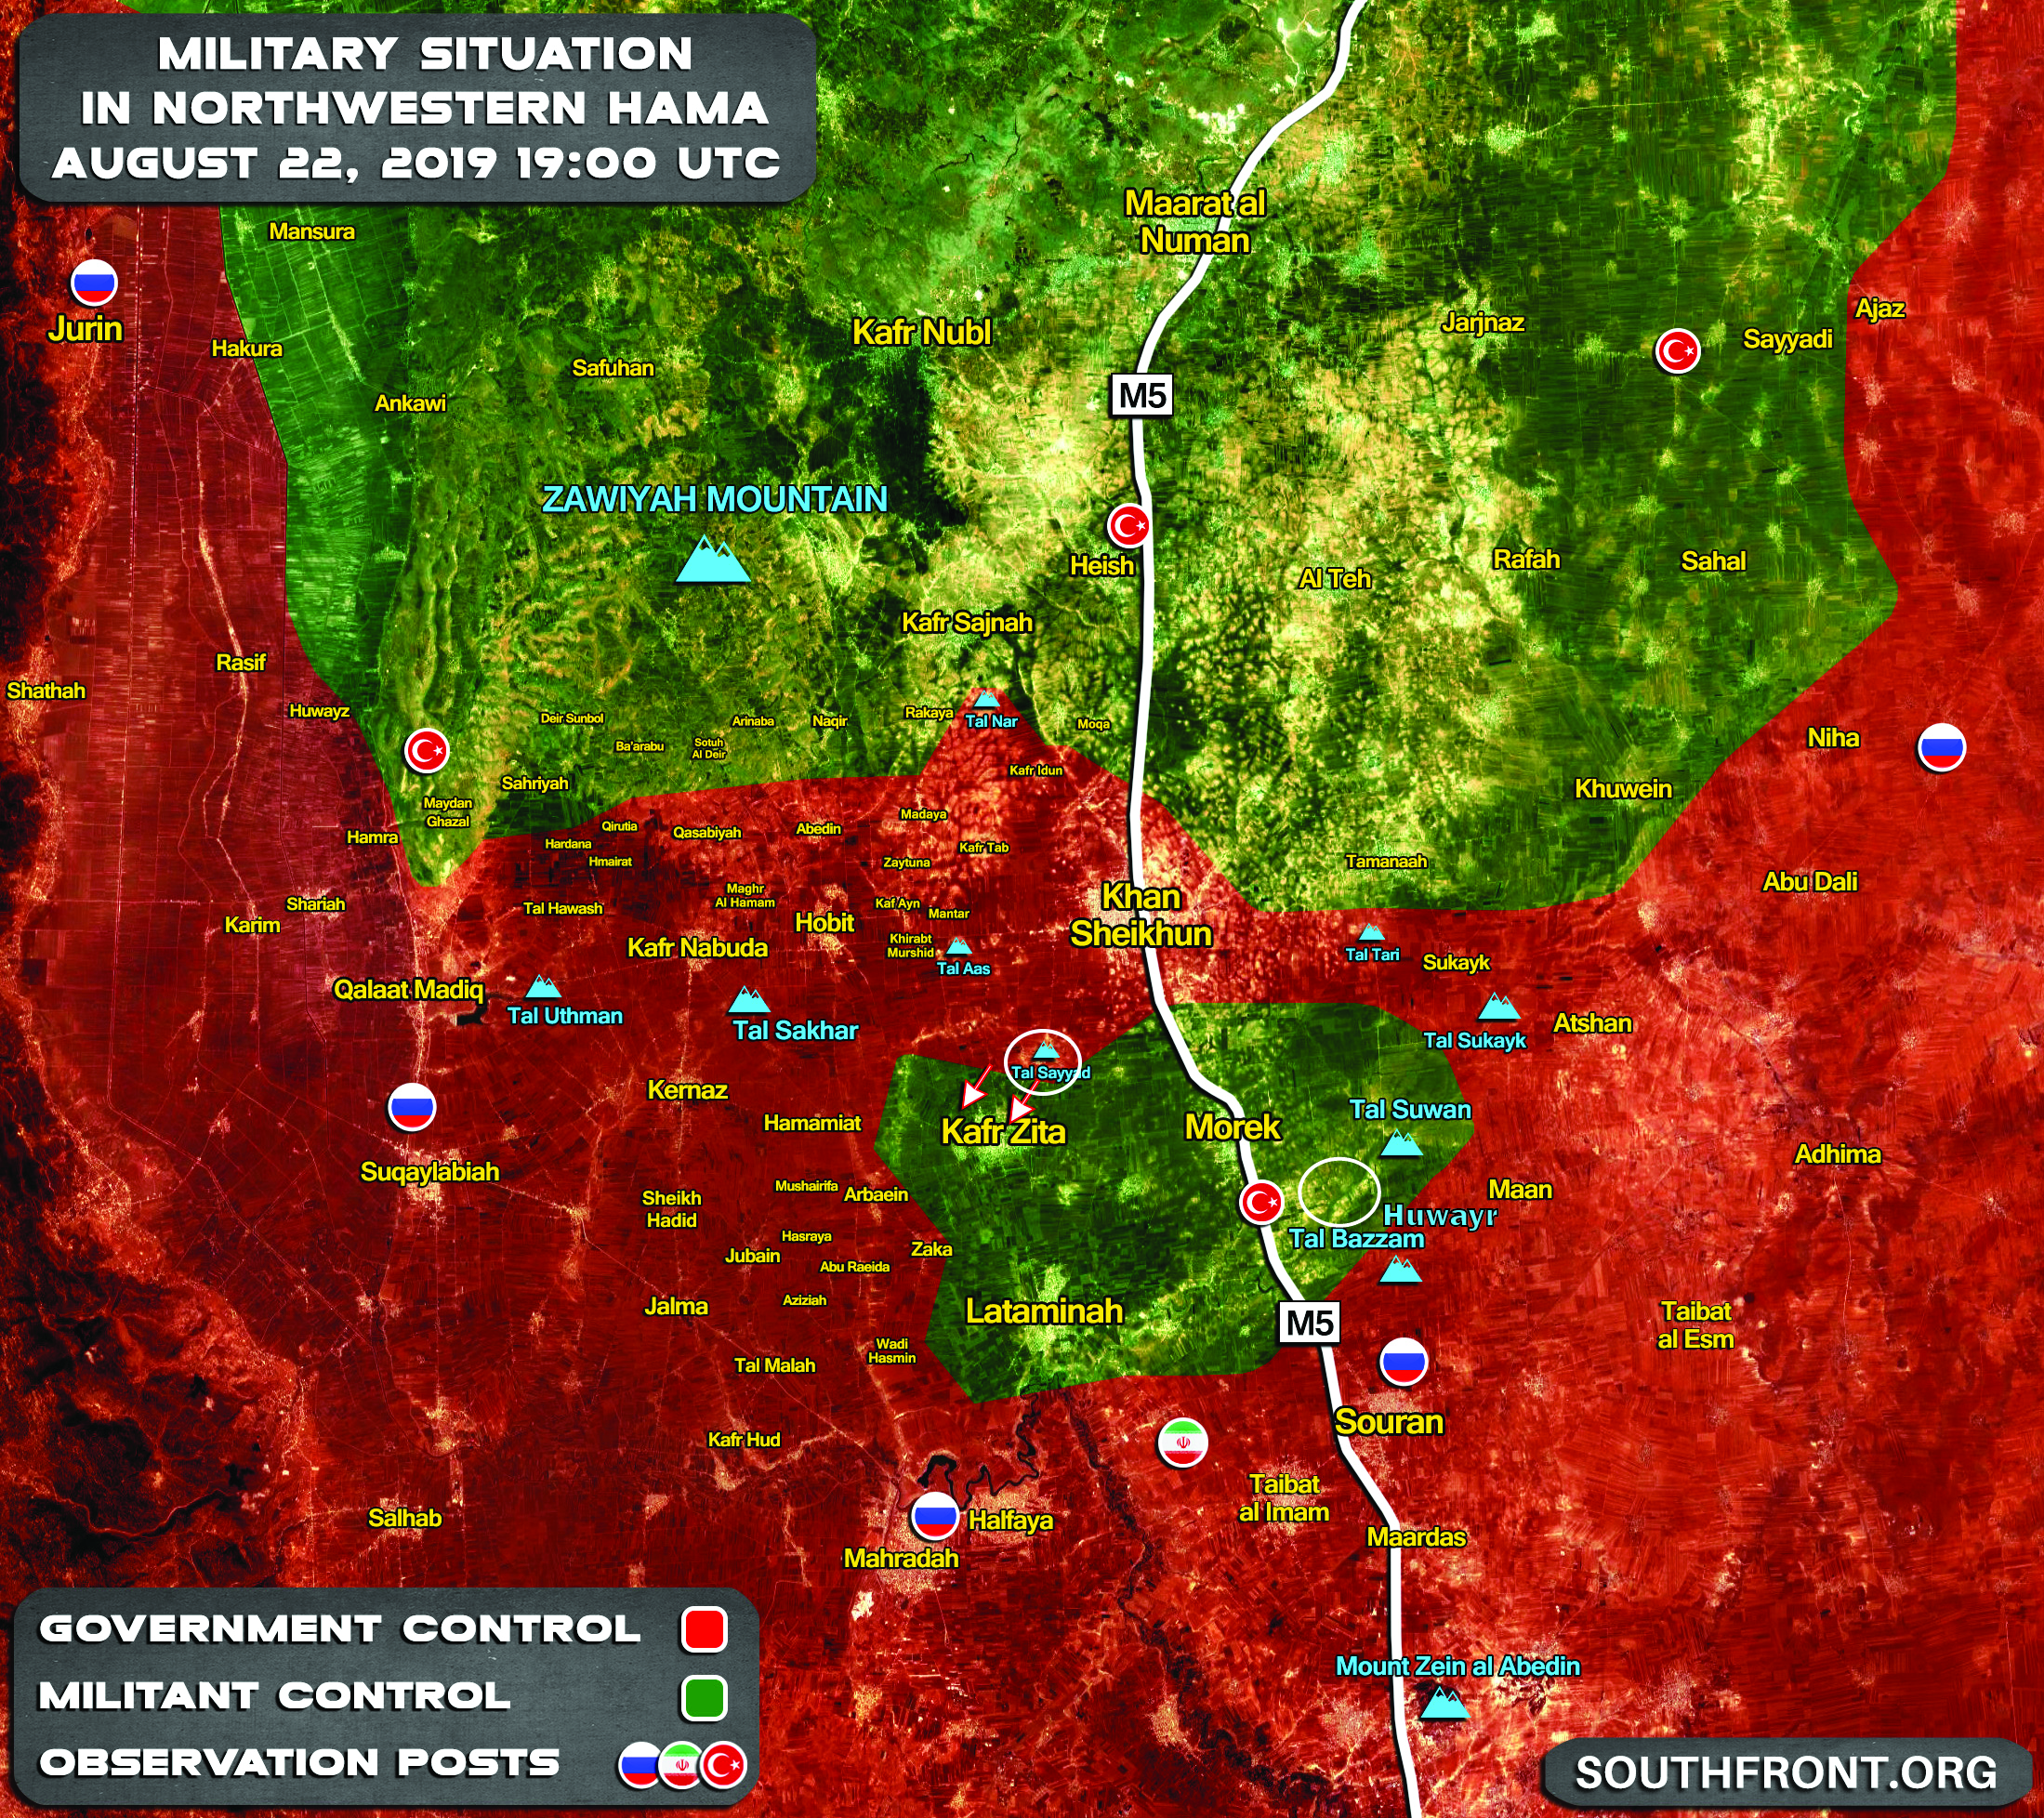 Syrian Army Captures Key Hills East Of Turkish Post In Northern Hama